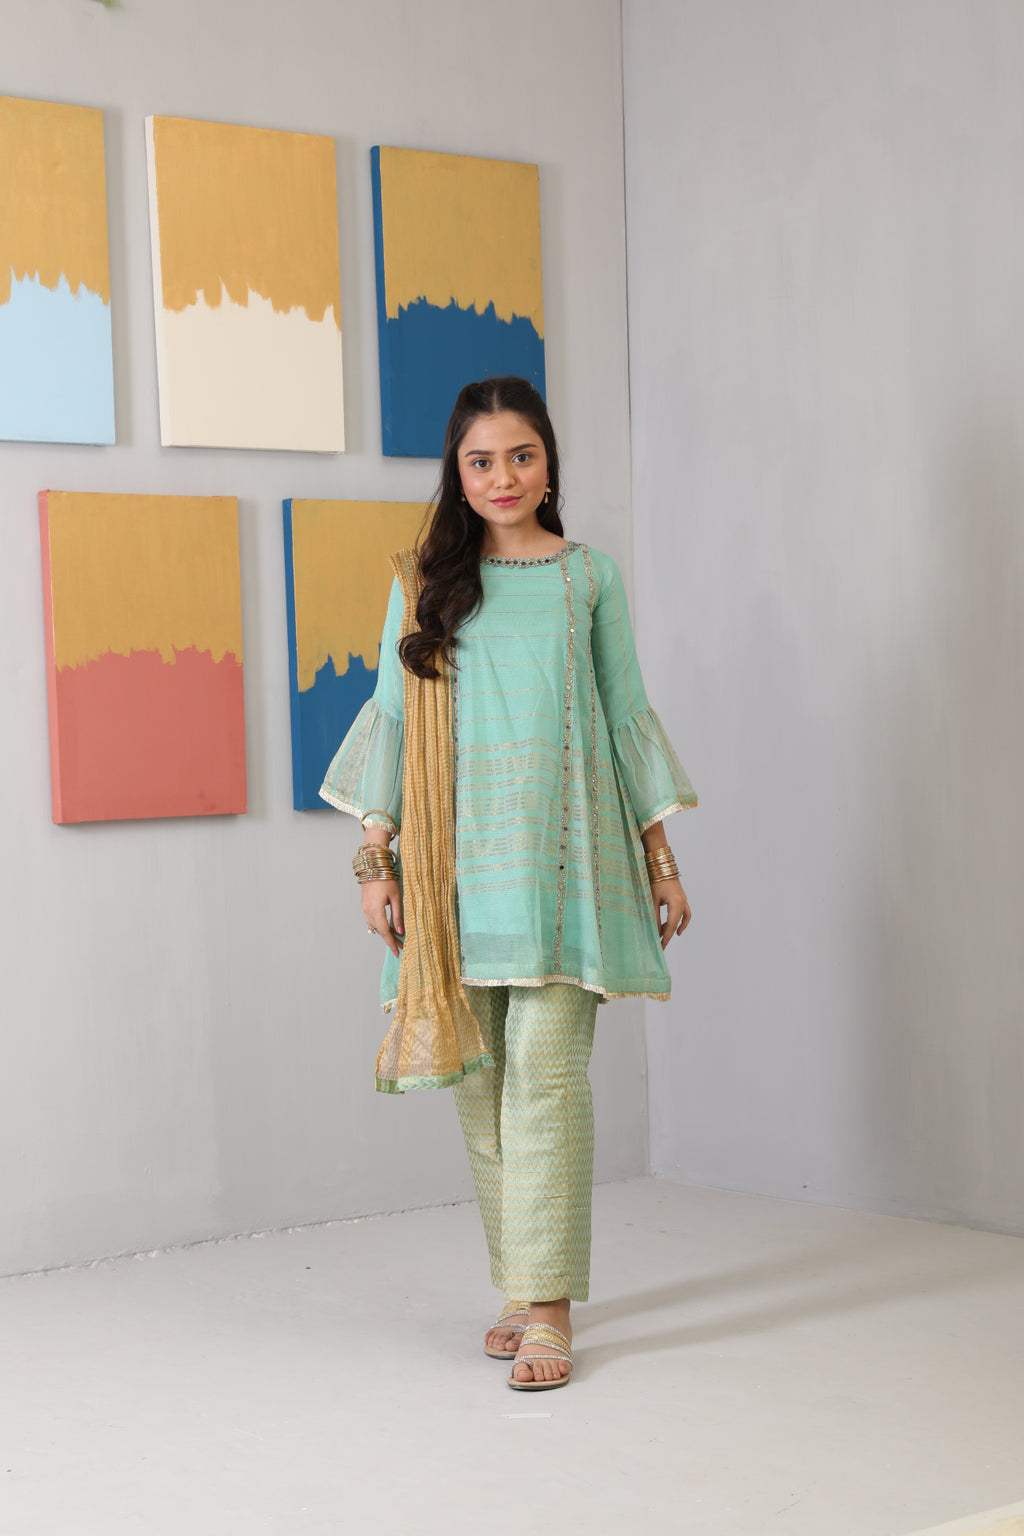 GDD-01495 | Sea Green | Formal 3 Piece Suit  | Banarsi Khaddi Net